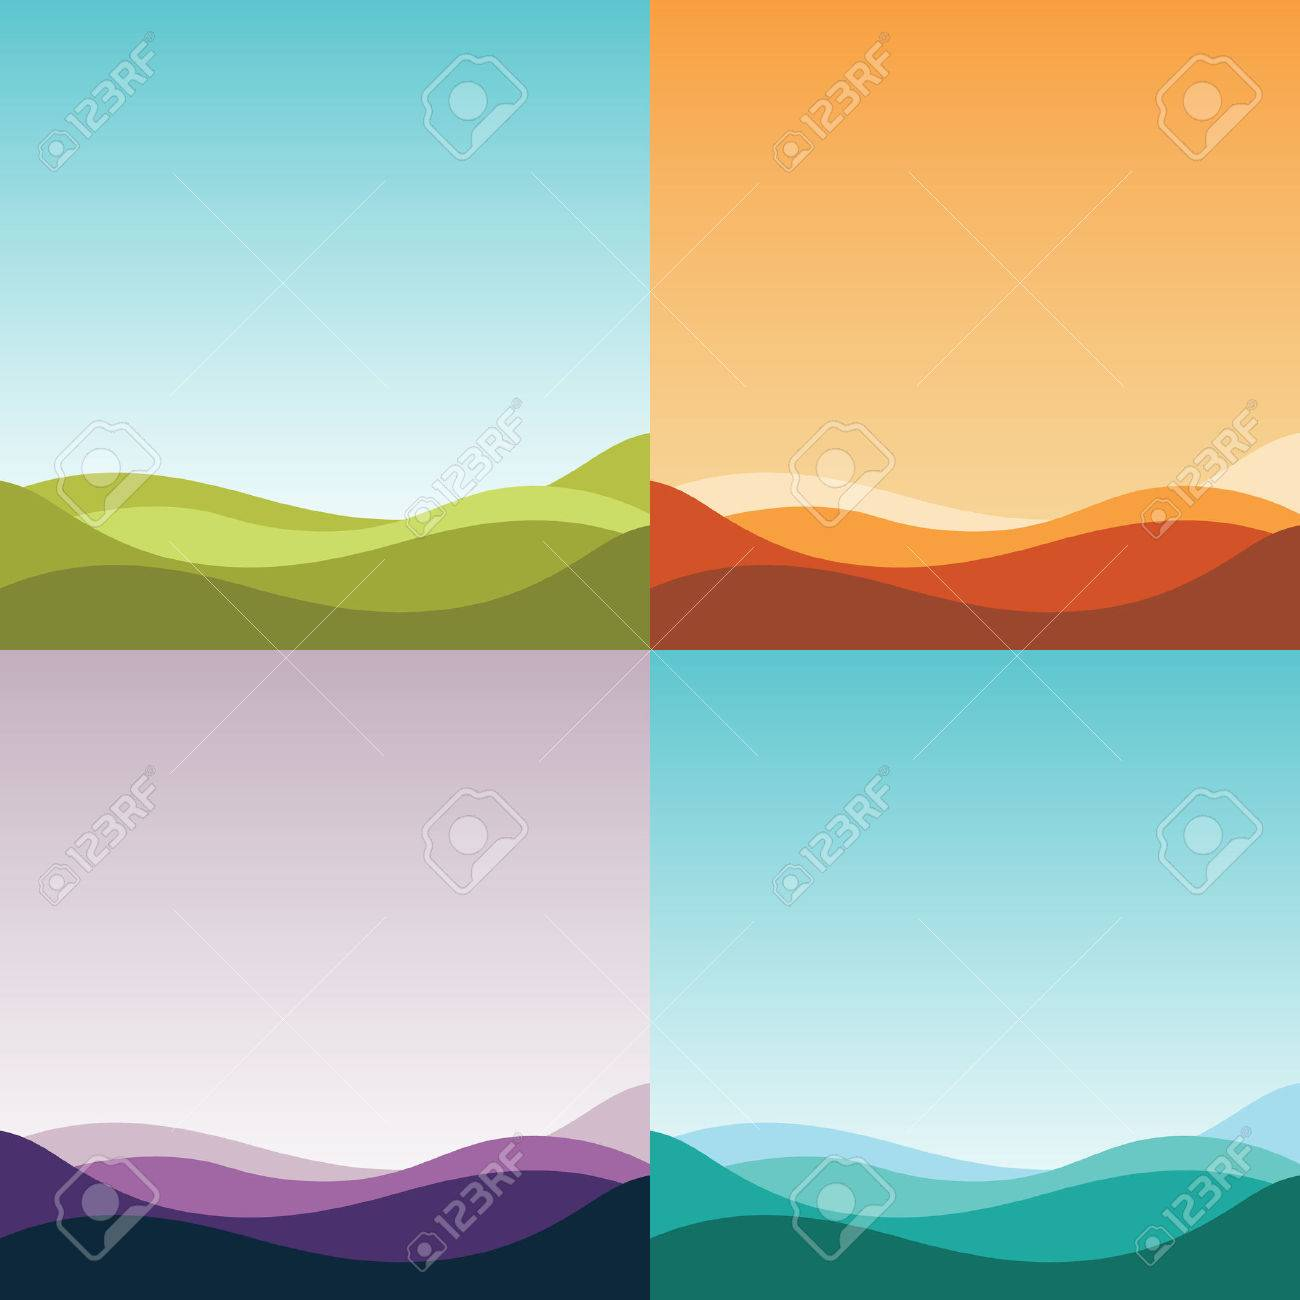 four gradient abstract backgrounds set. simple nature landscapes